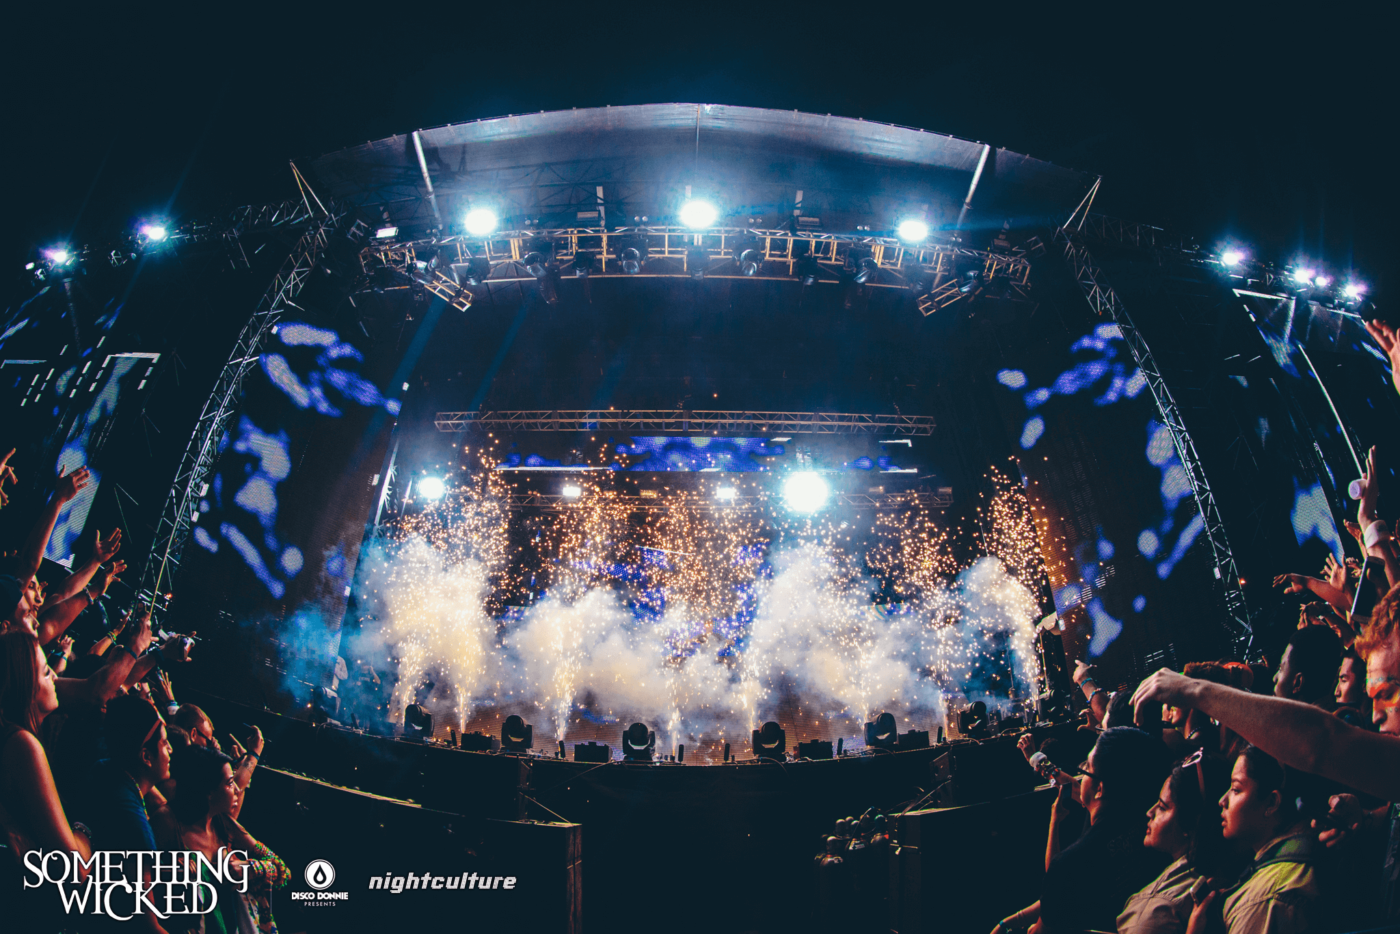 smoke and lights on stage at something wicked